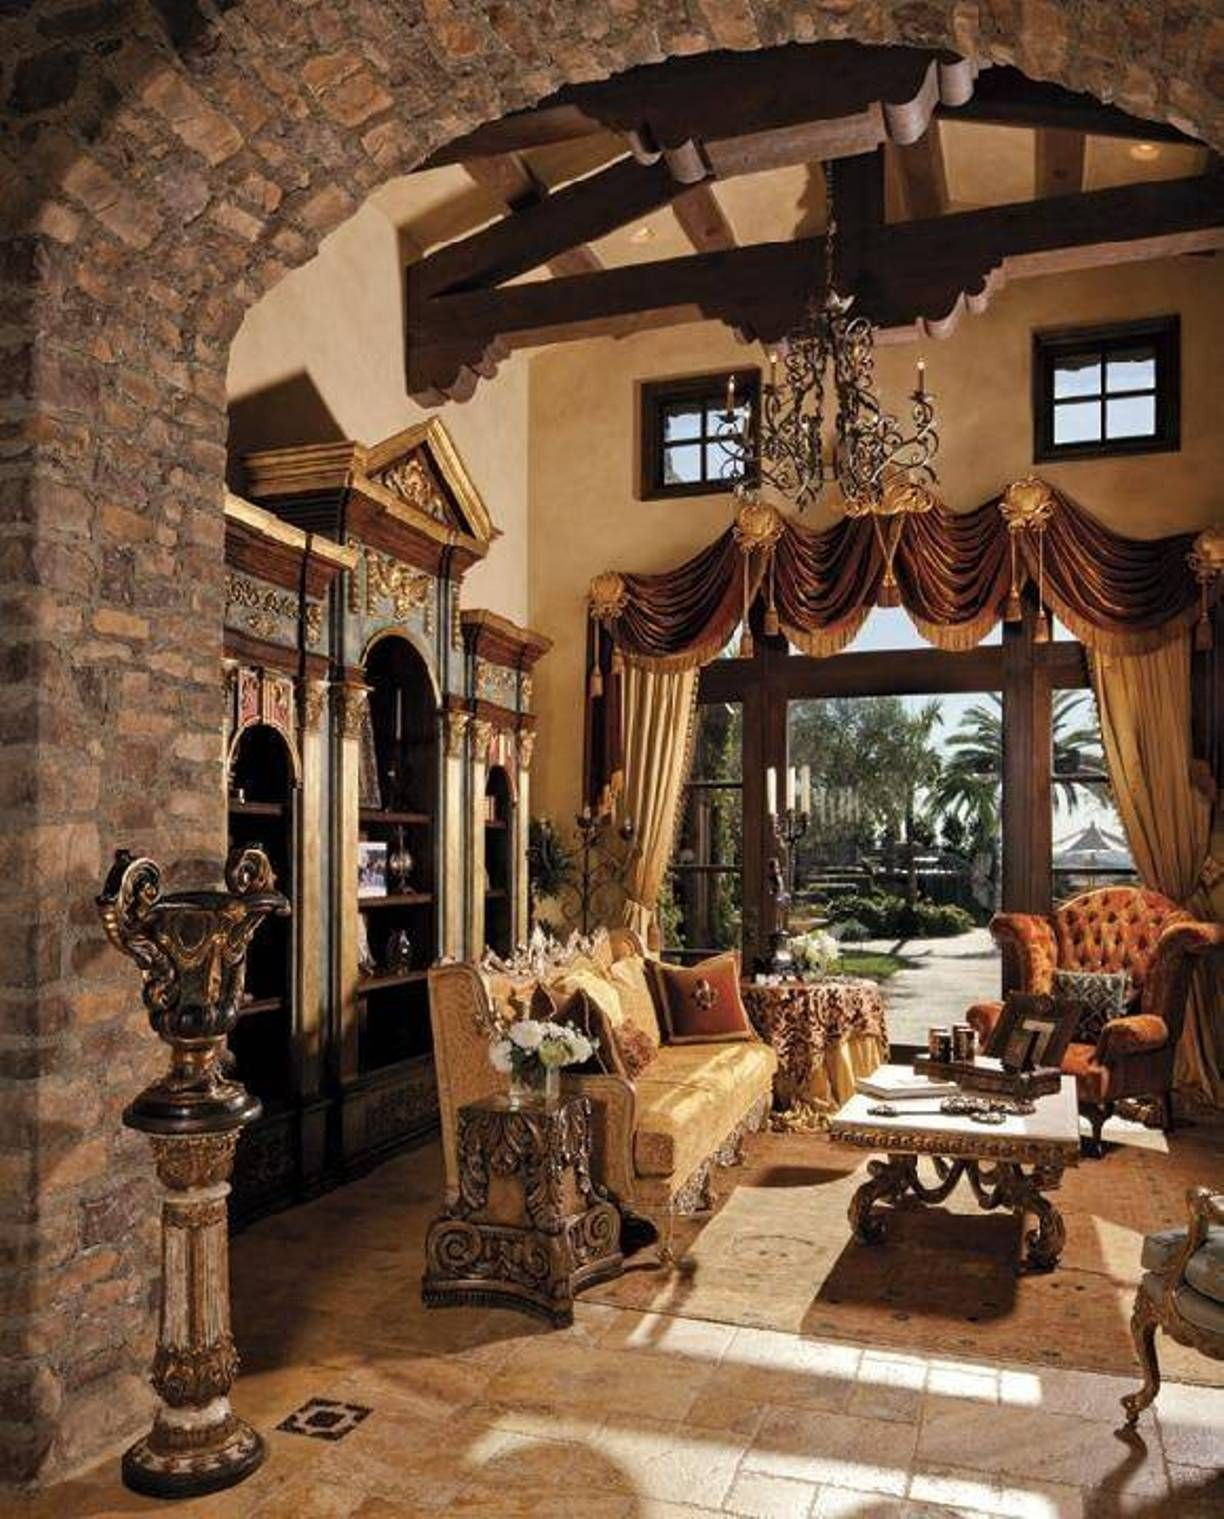 9 Awesome Living Room Design Ideas: 15 Awesome Tuscan Living Room Ideas